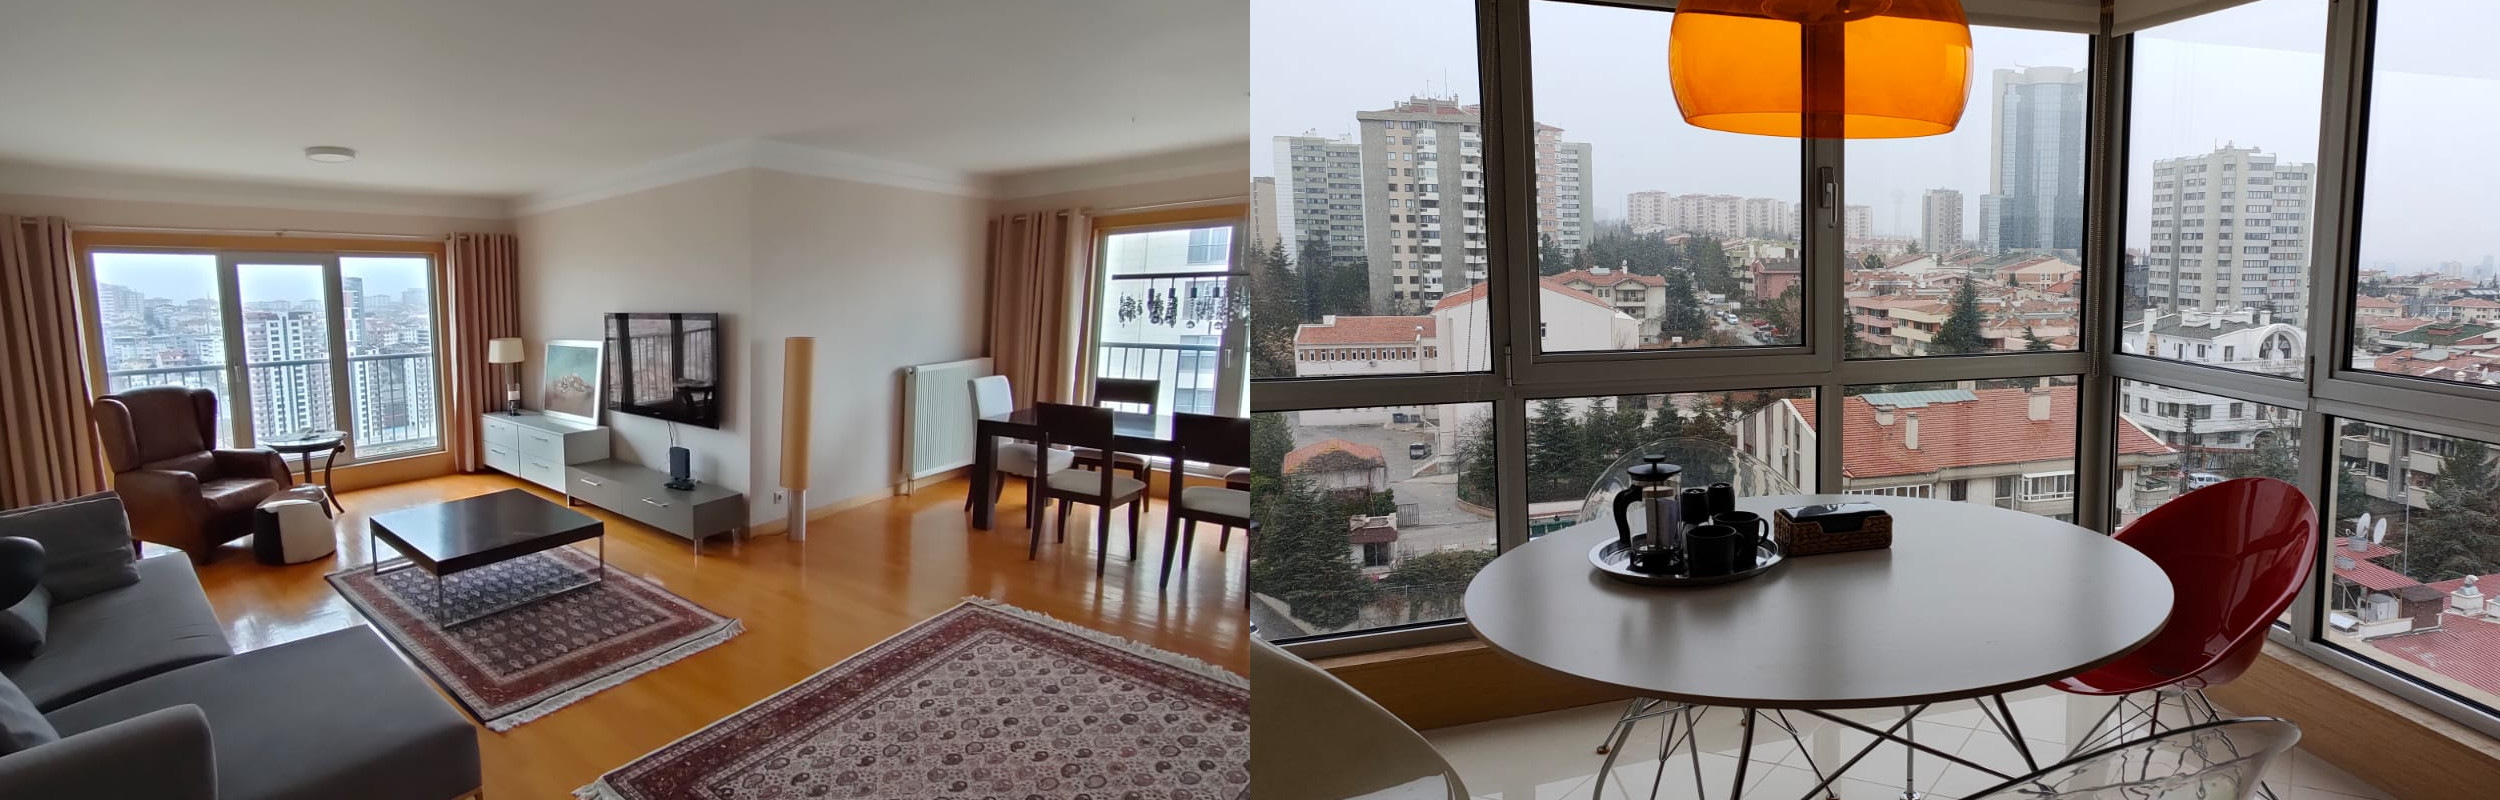 FURNISHED 3+1 FLAT IN MESA KOZA PLAZA COMPOUND, GAZİOSMANPAŞA